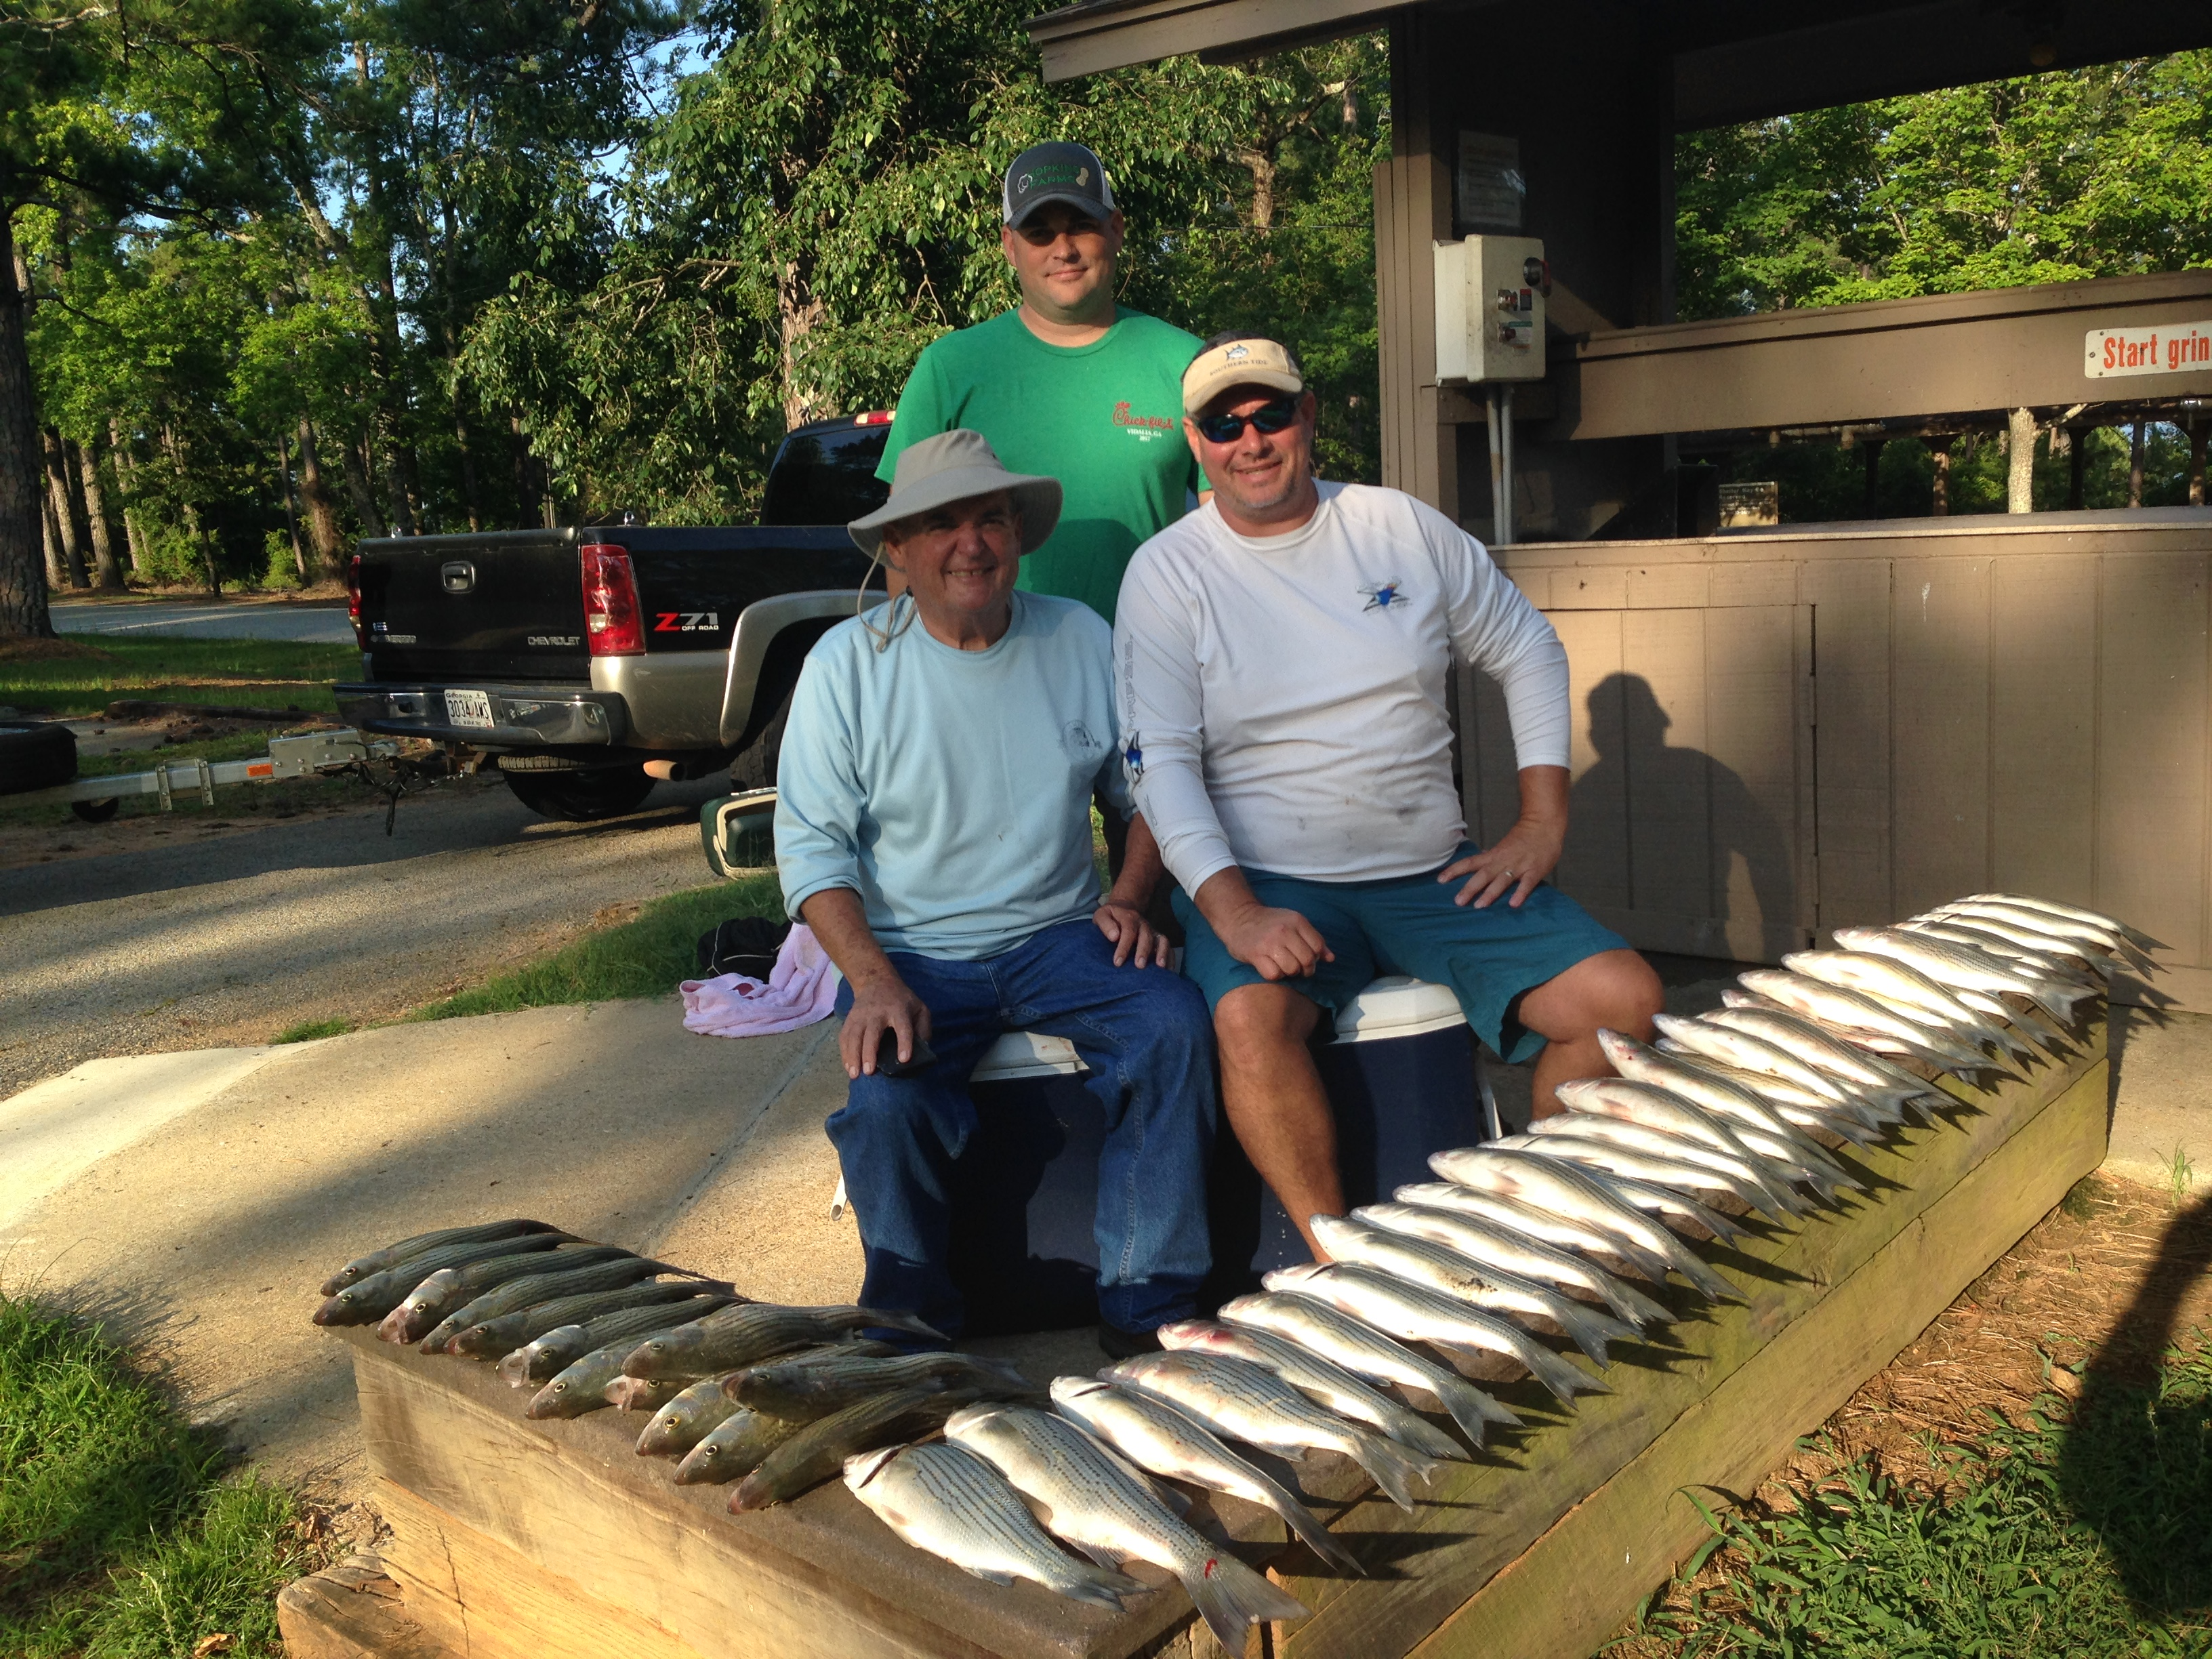 June 15, 2017 Jake and Ricky Cleghorn and Michael Mckinney